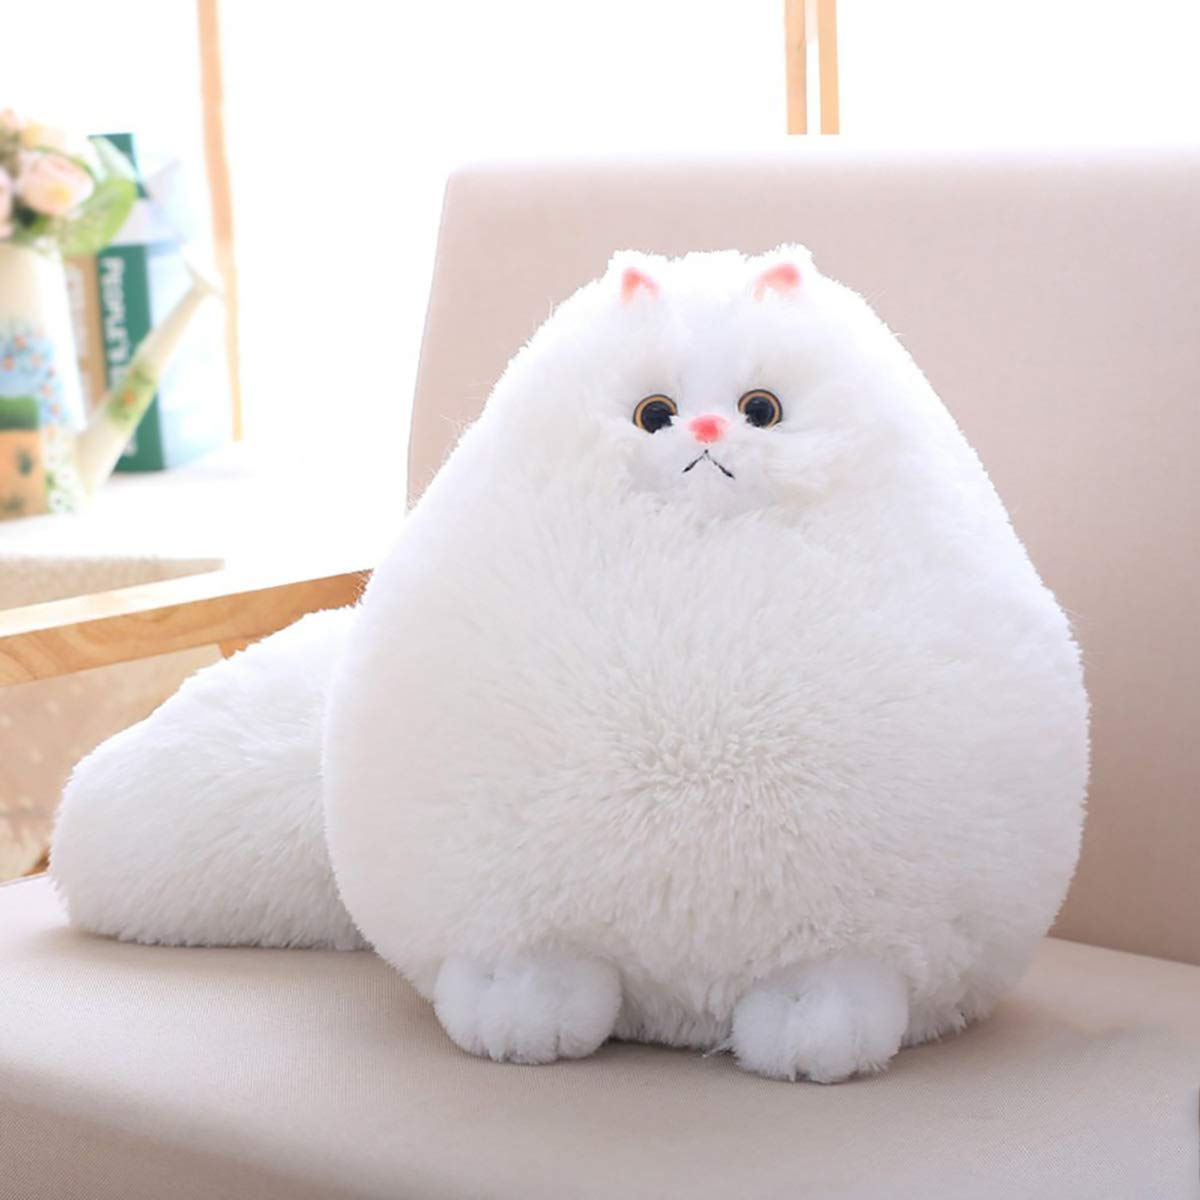 Winsterch Kids Stuffed Cats Plush Animal Toys Gift Baby Doll,White Plush Cat,12 Inches A003